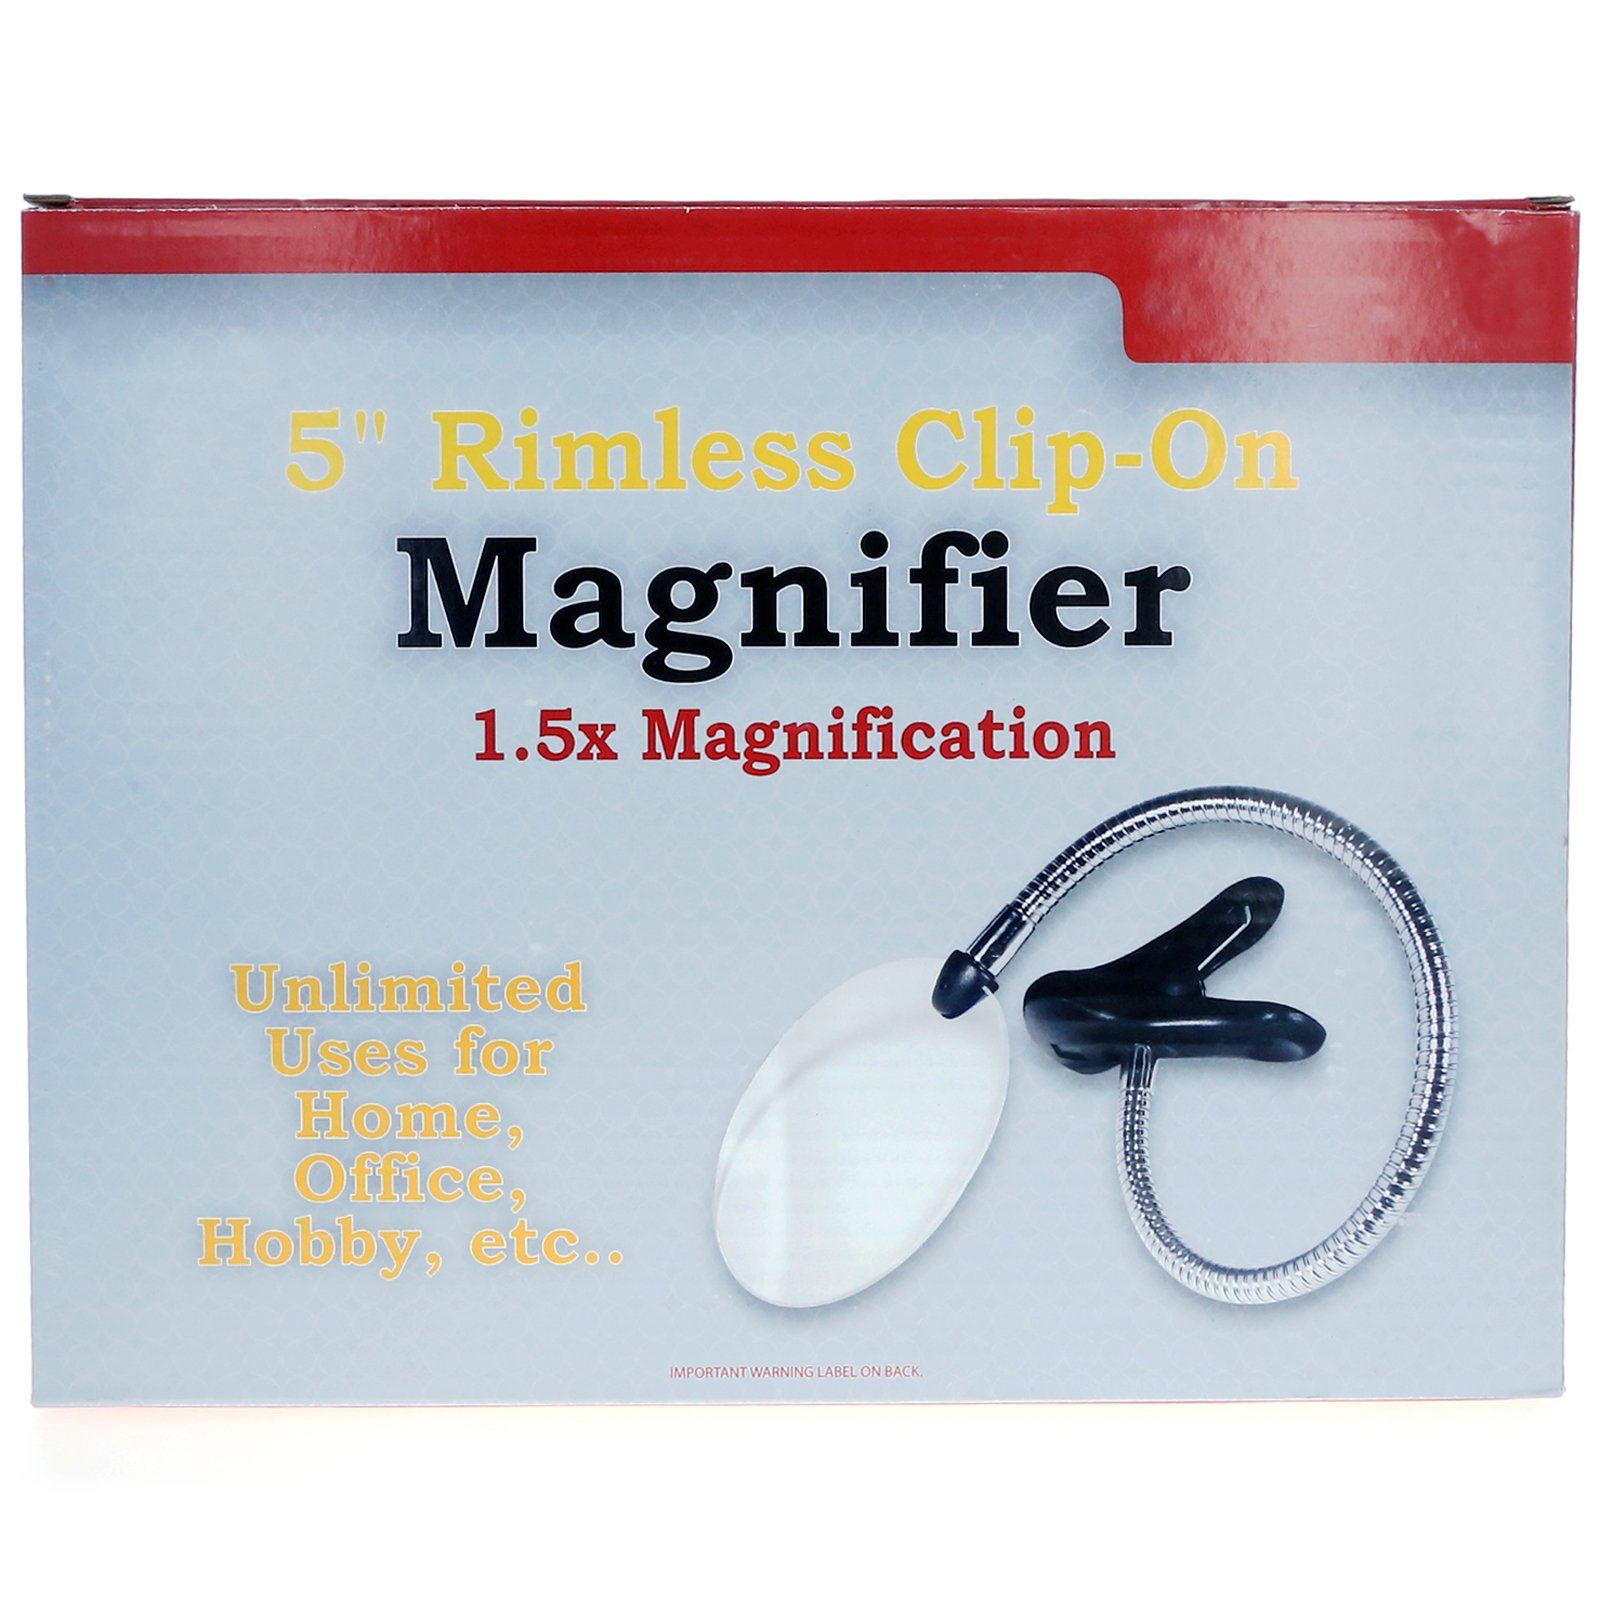 Rimless Clip-on Magnifier with Bendable Neck